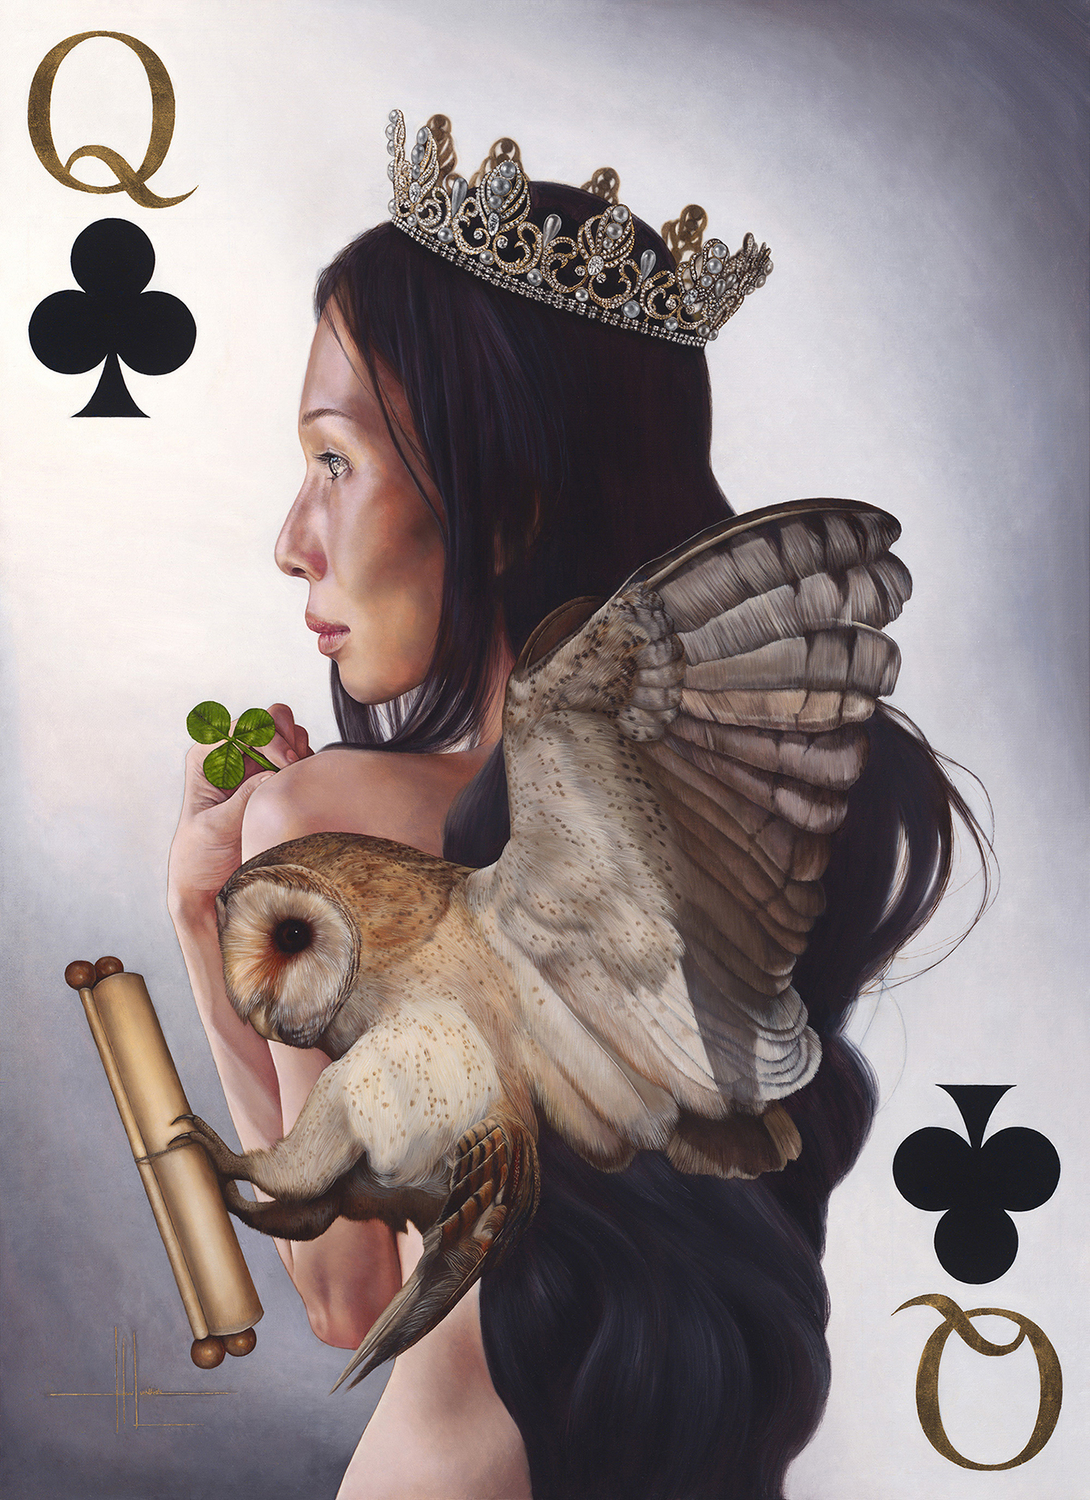 Queen of Clubs Artwork by Hari Lualhati